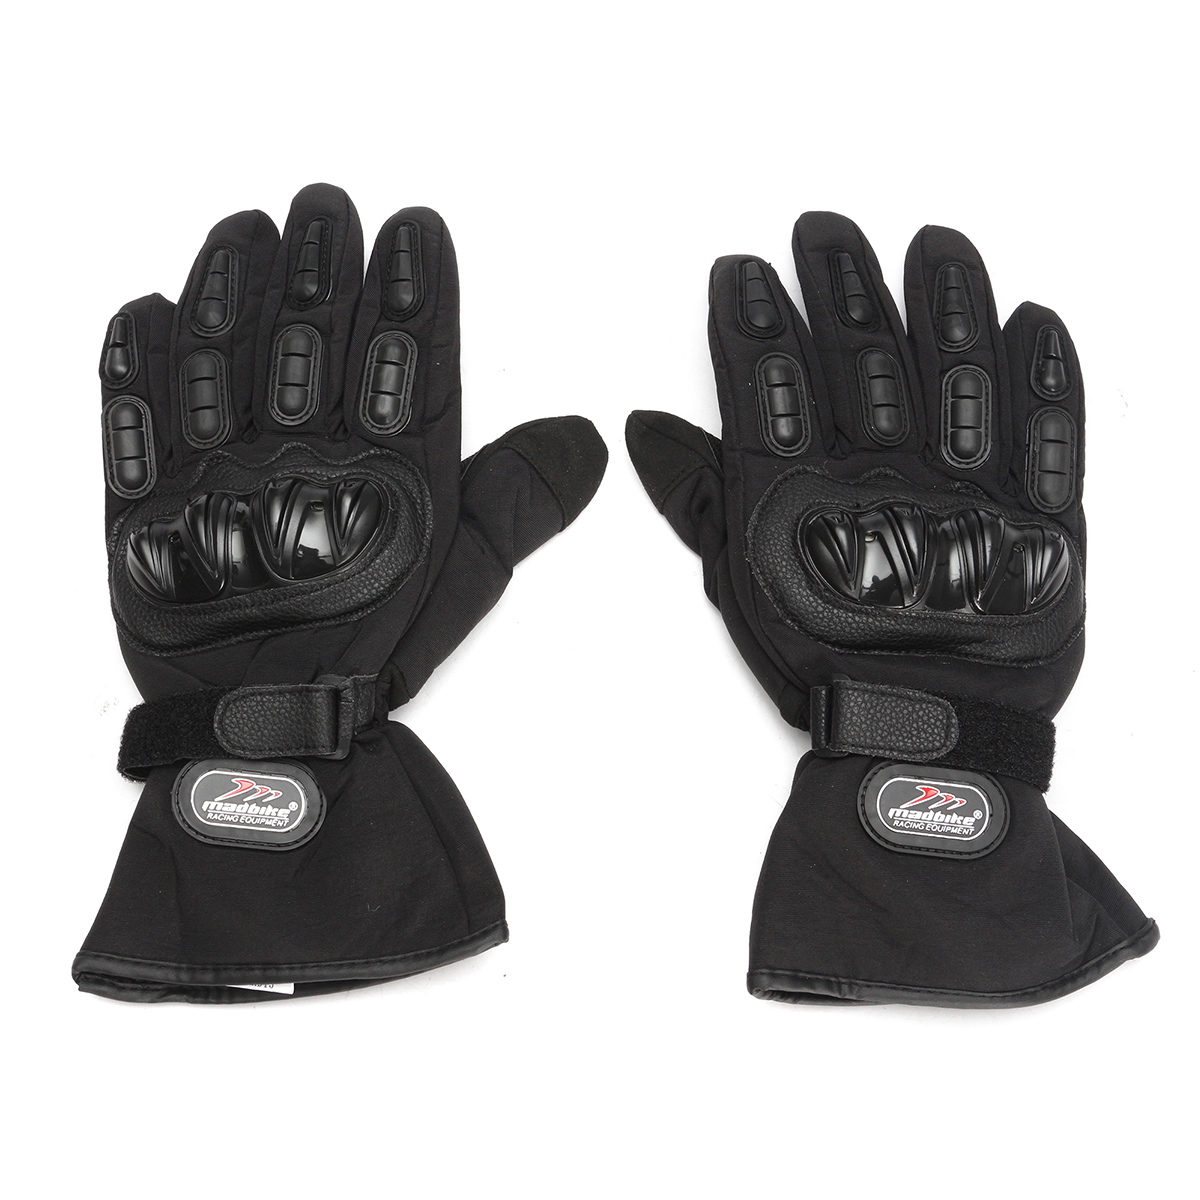 Driving gloves johannesburg - Winter Leather Waterproof Thermal Mittens Motorcycle Gloves M 2xl